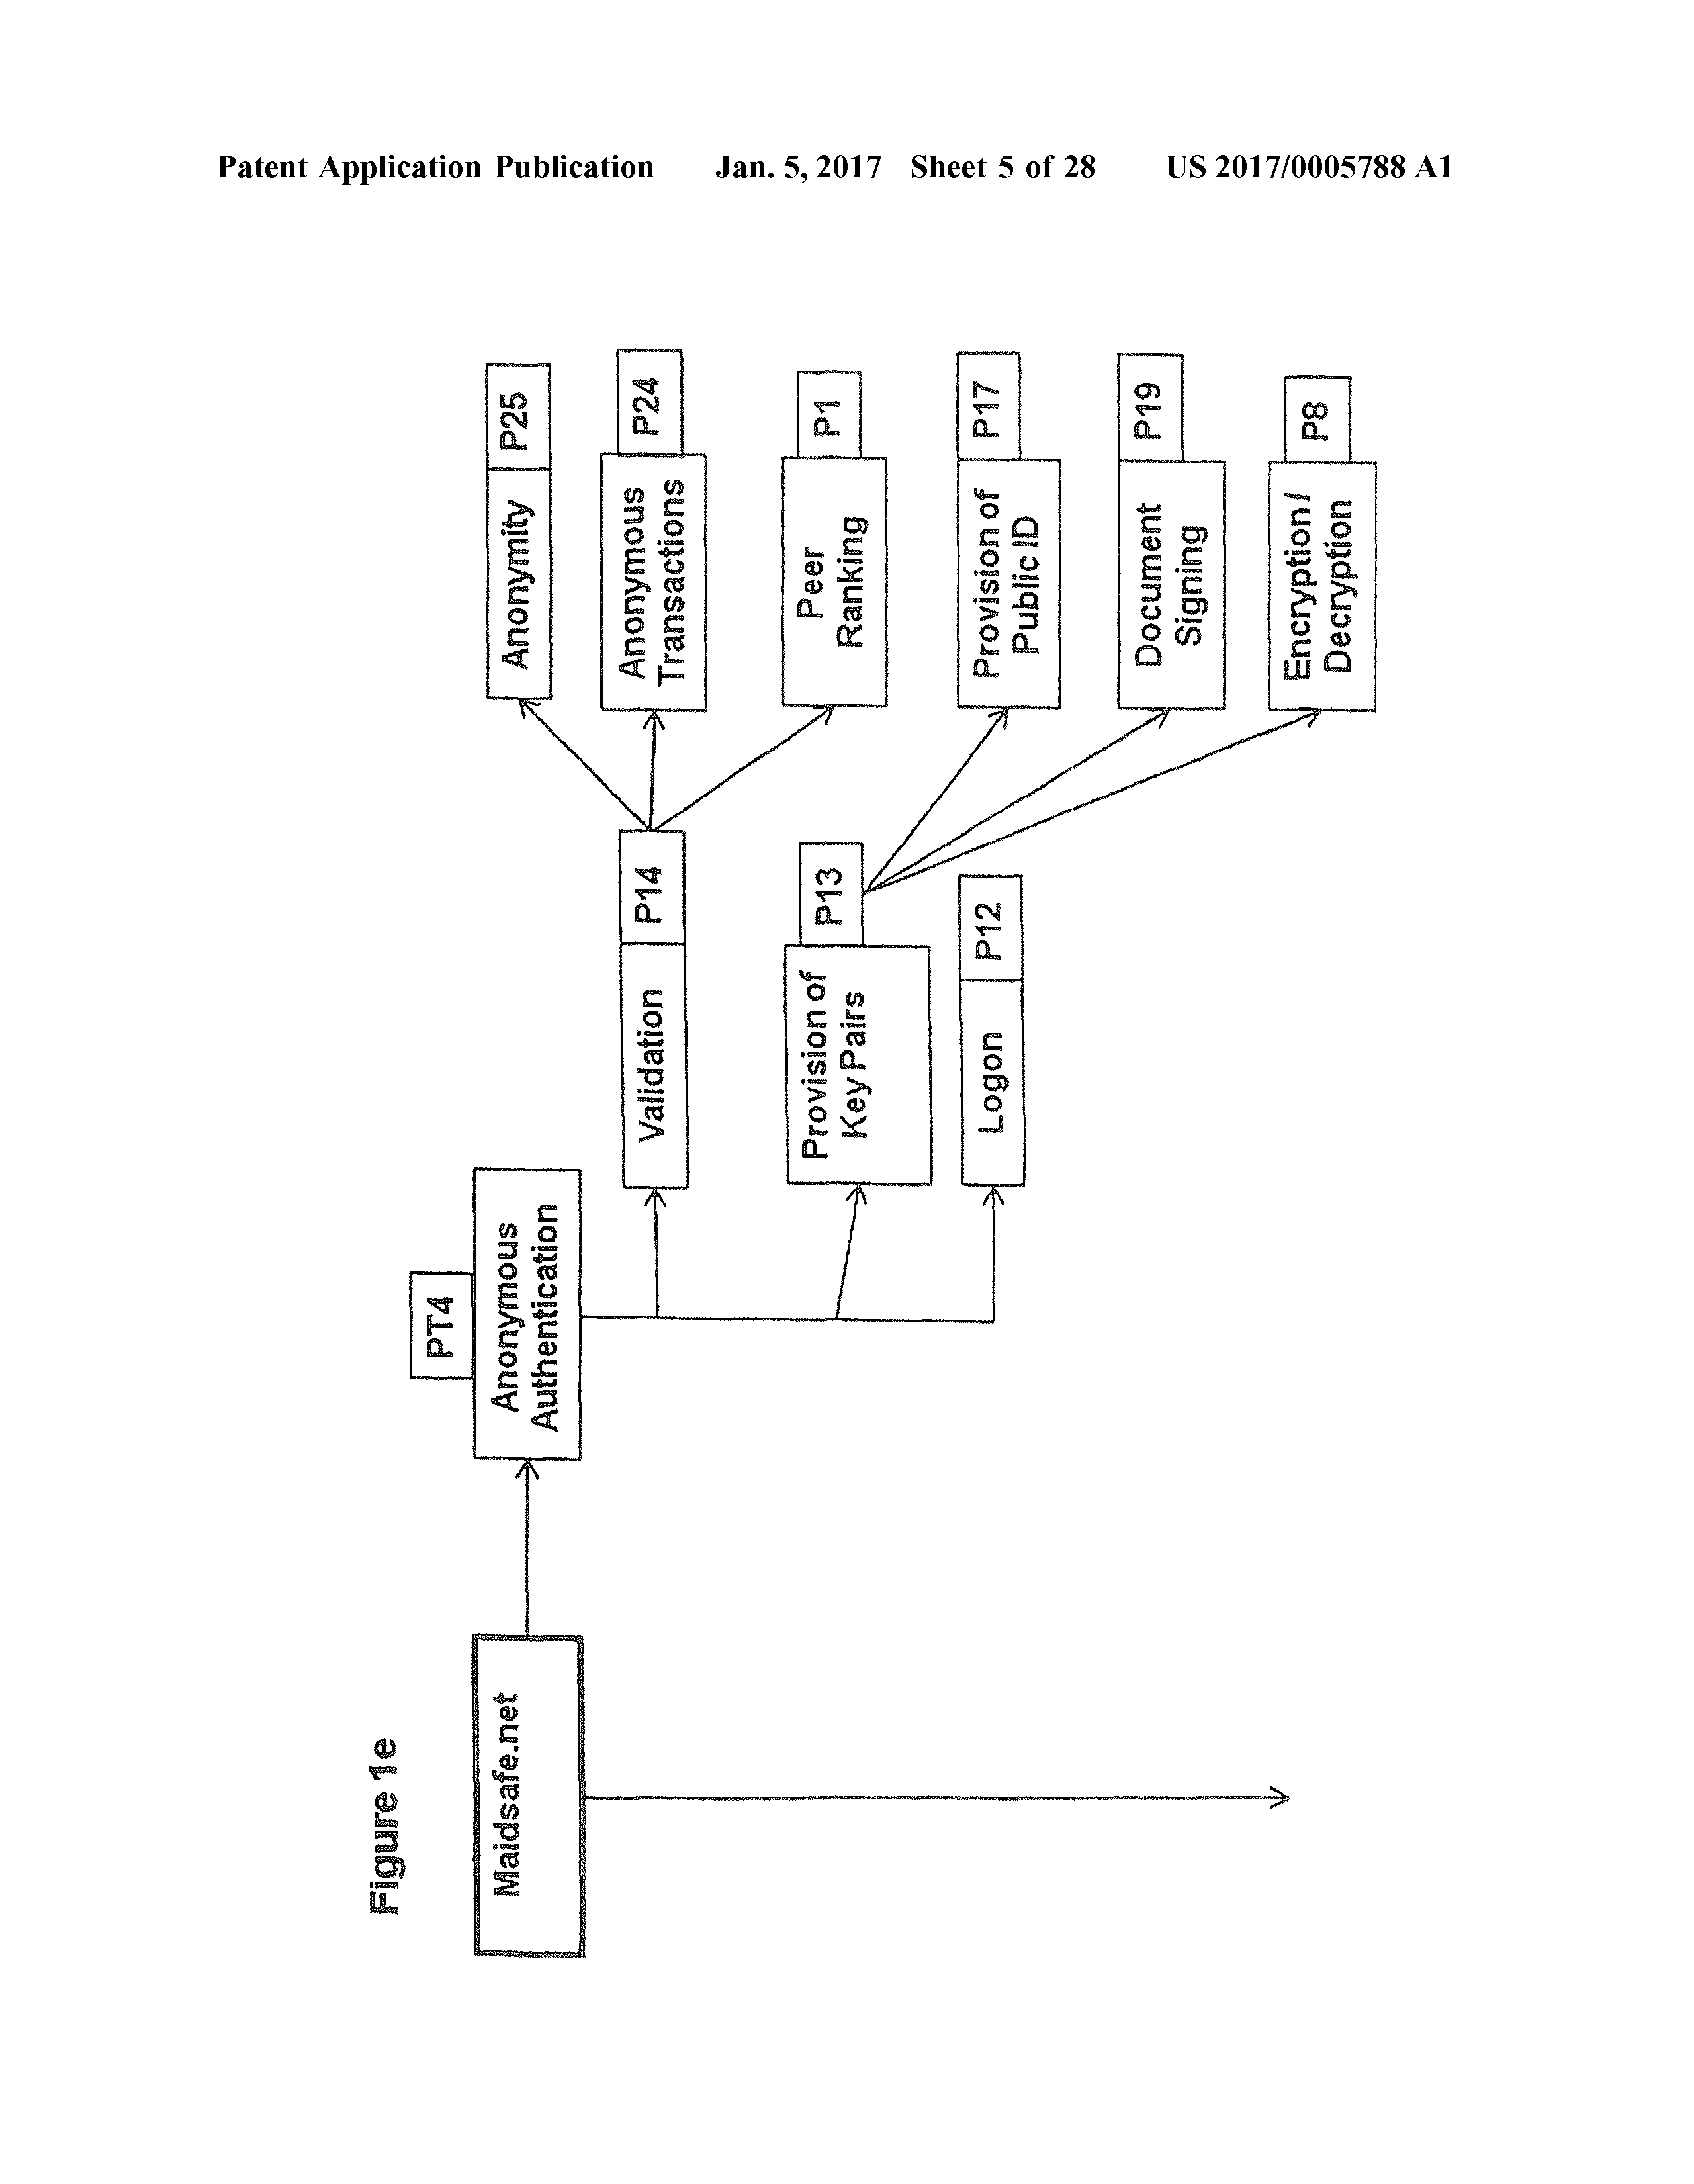 US 2017/0005788 A1 - Communication System And Method - The Lens